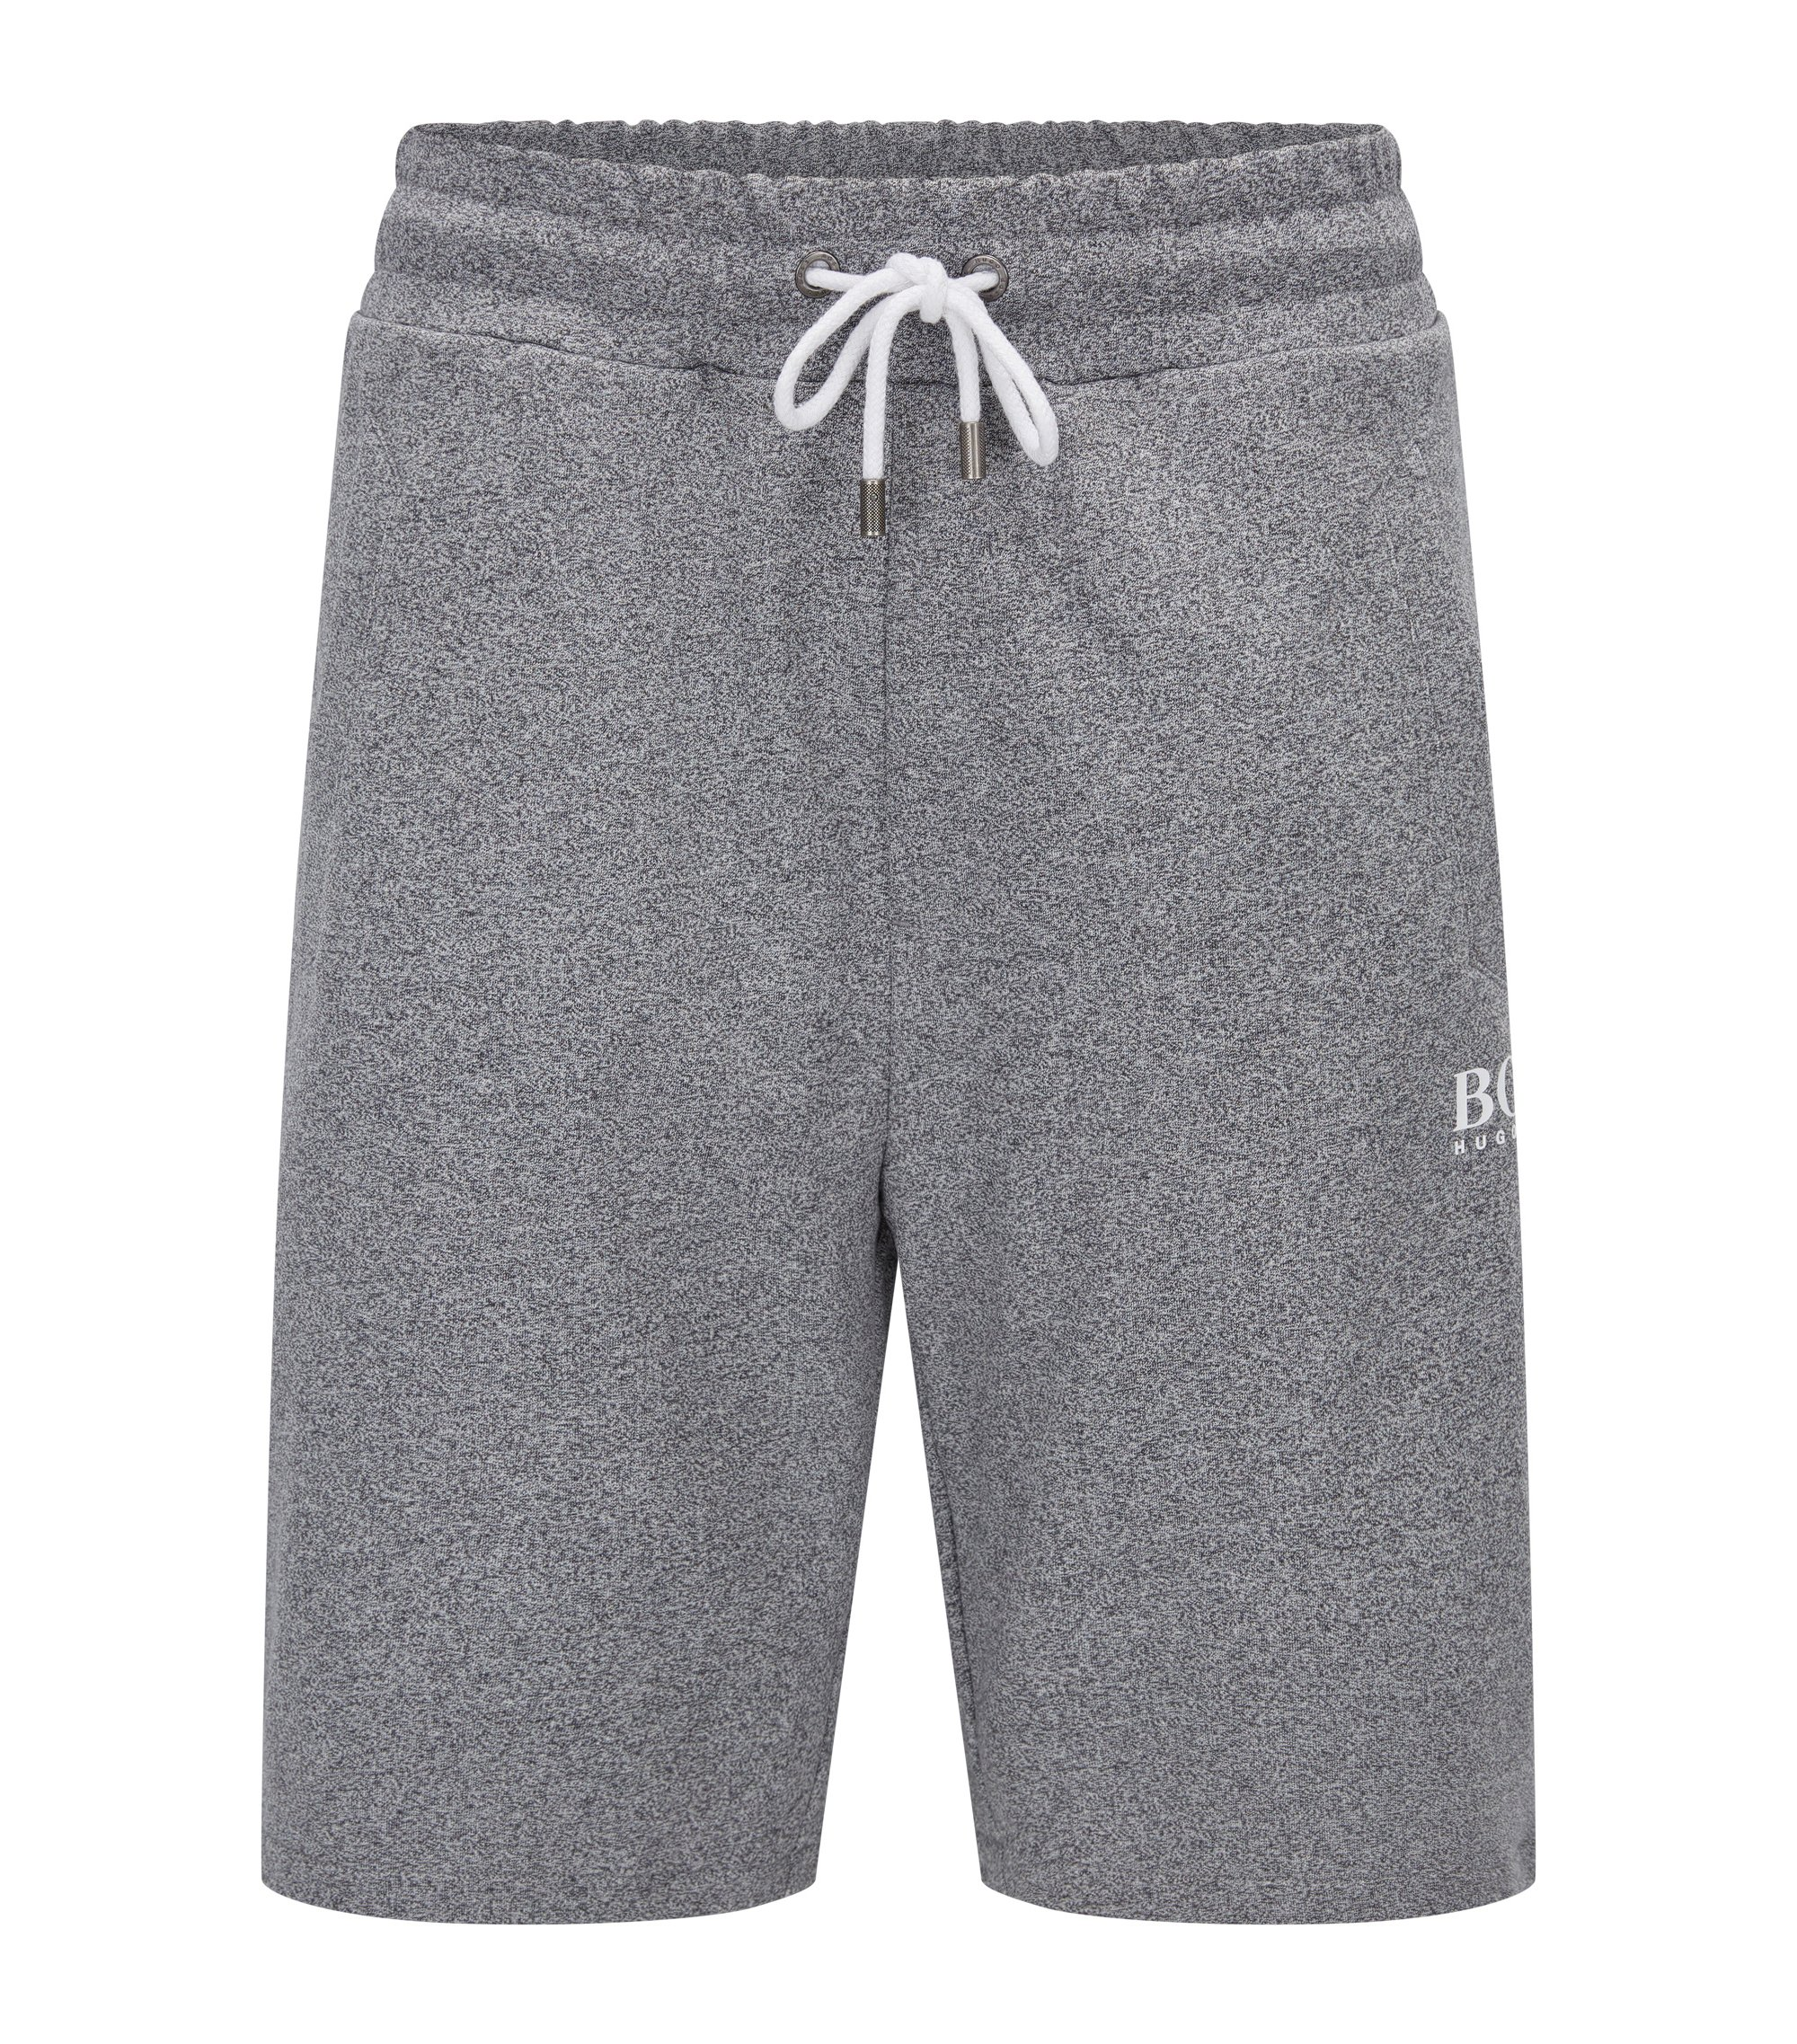 Loungewear shorts in French terry, Anthracite